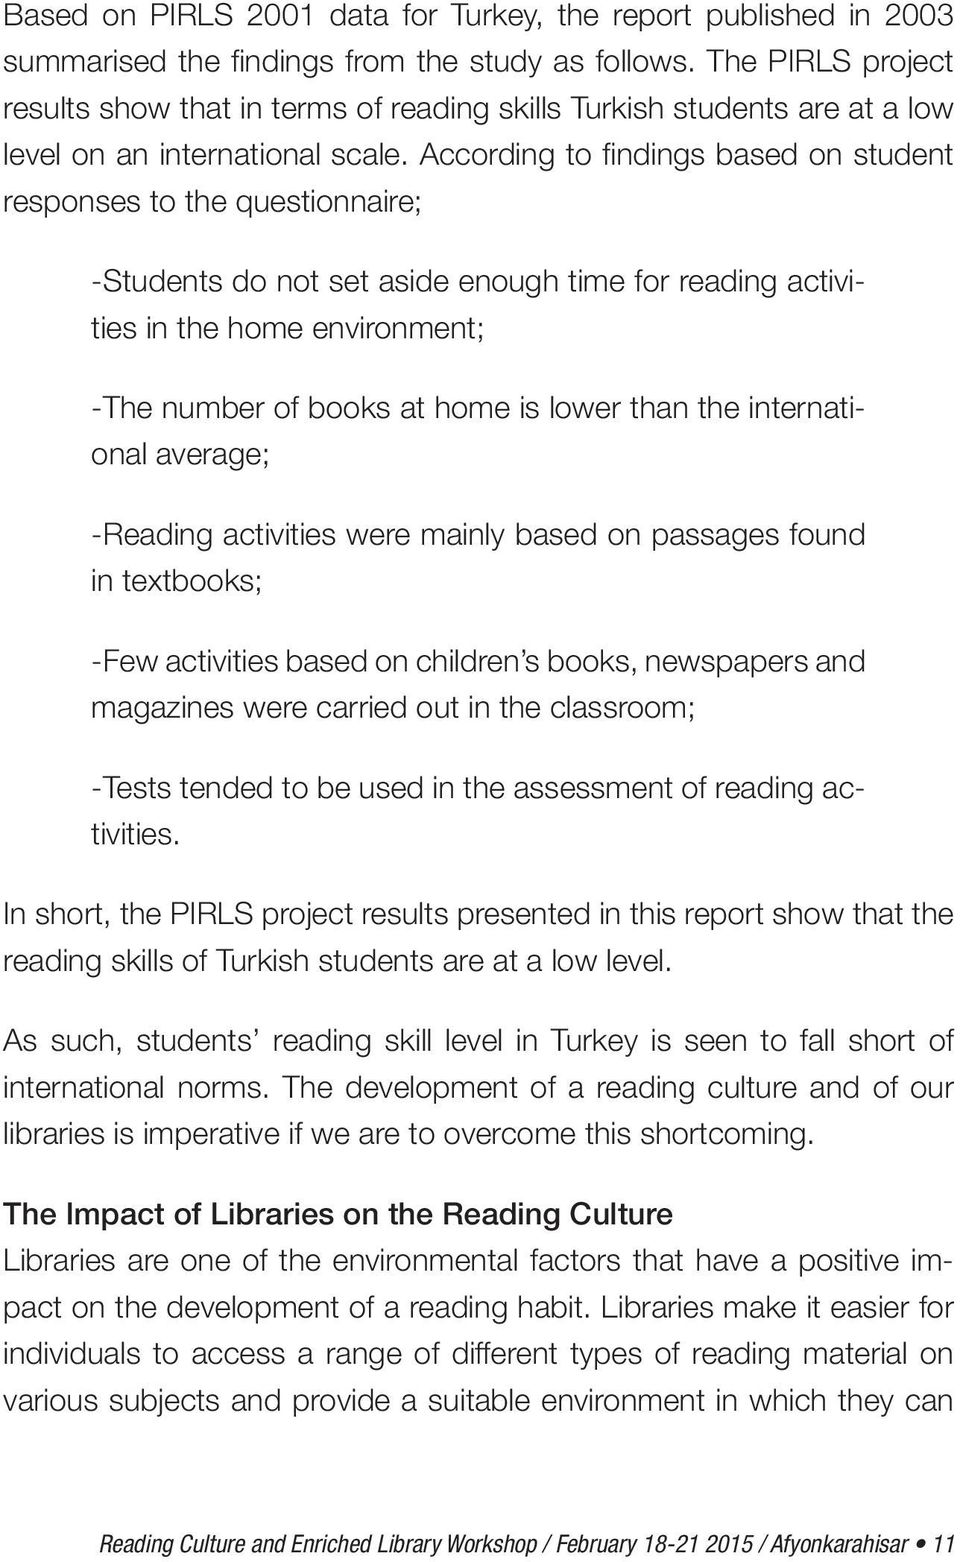 According to findings based on student responses to the questionnaire; -Students do not set aside enough time for reading activities in the home environment; -The number of books at home is lower